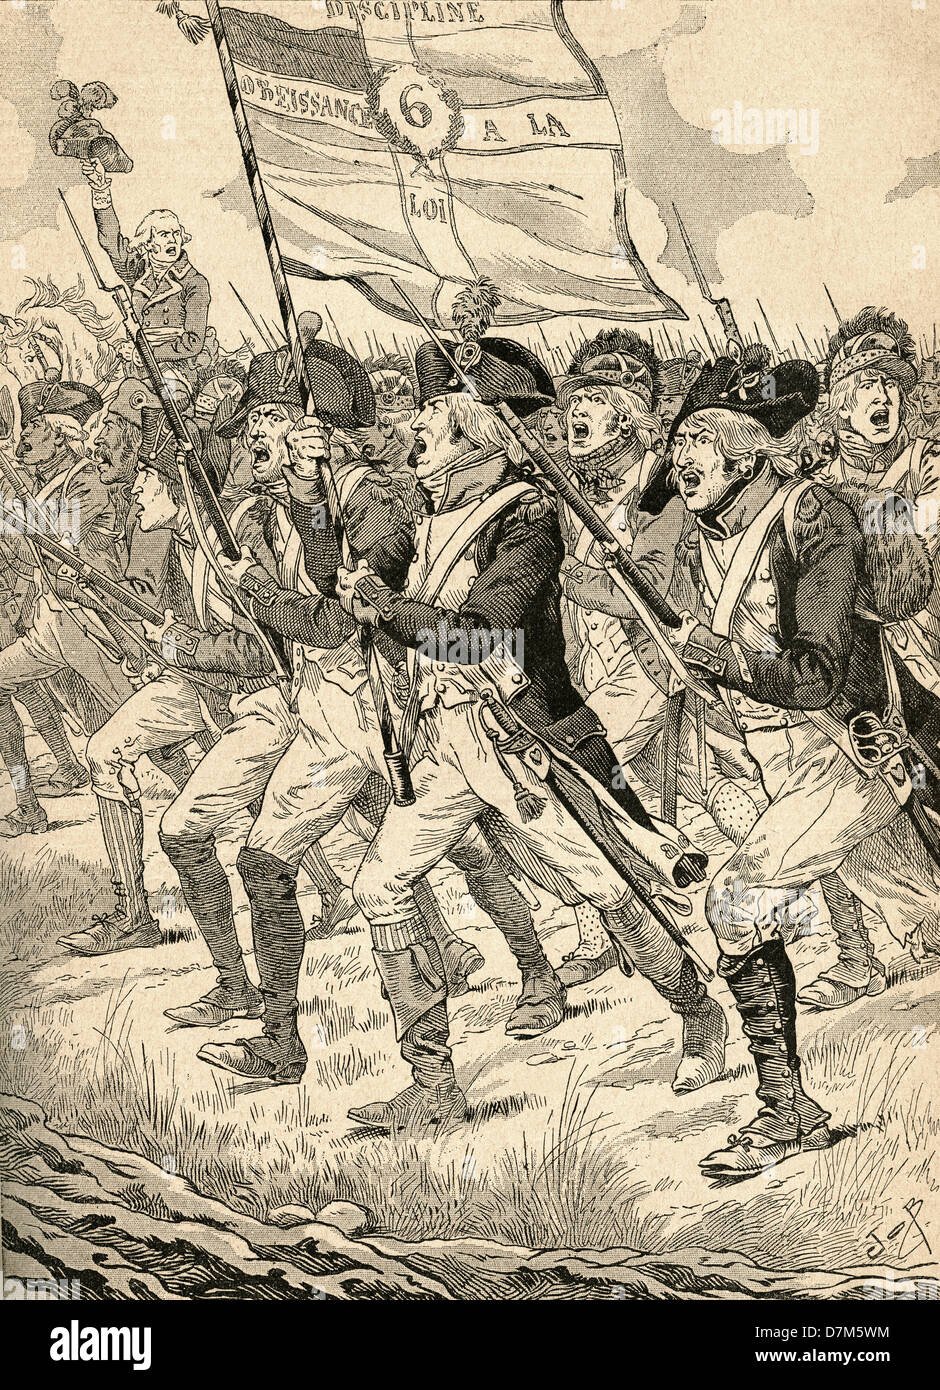 The Battle of Valmy, 1792, during the French Revolutionary Wars. - Stock Image